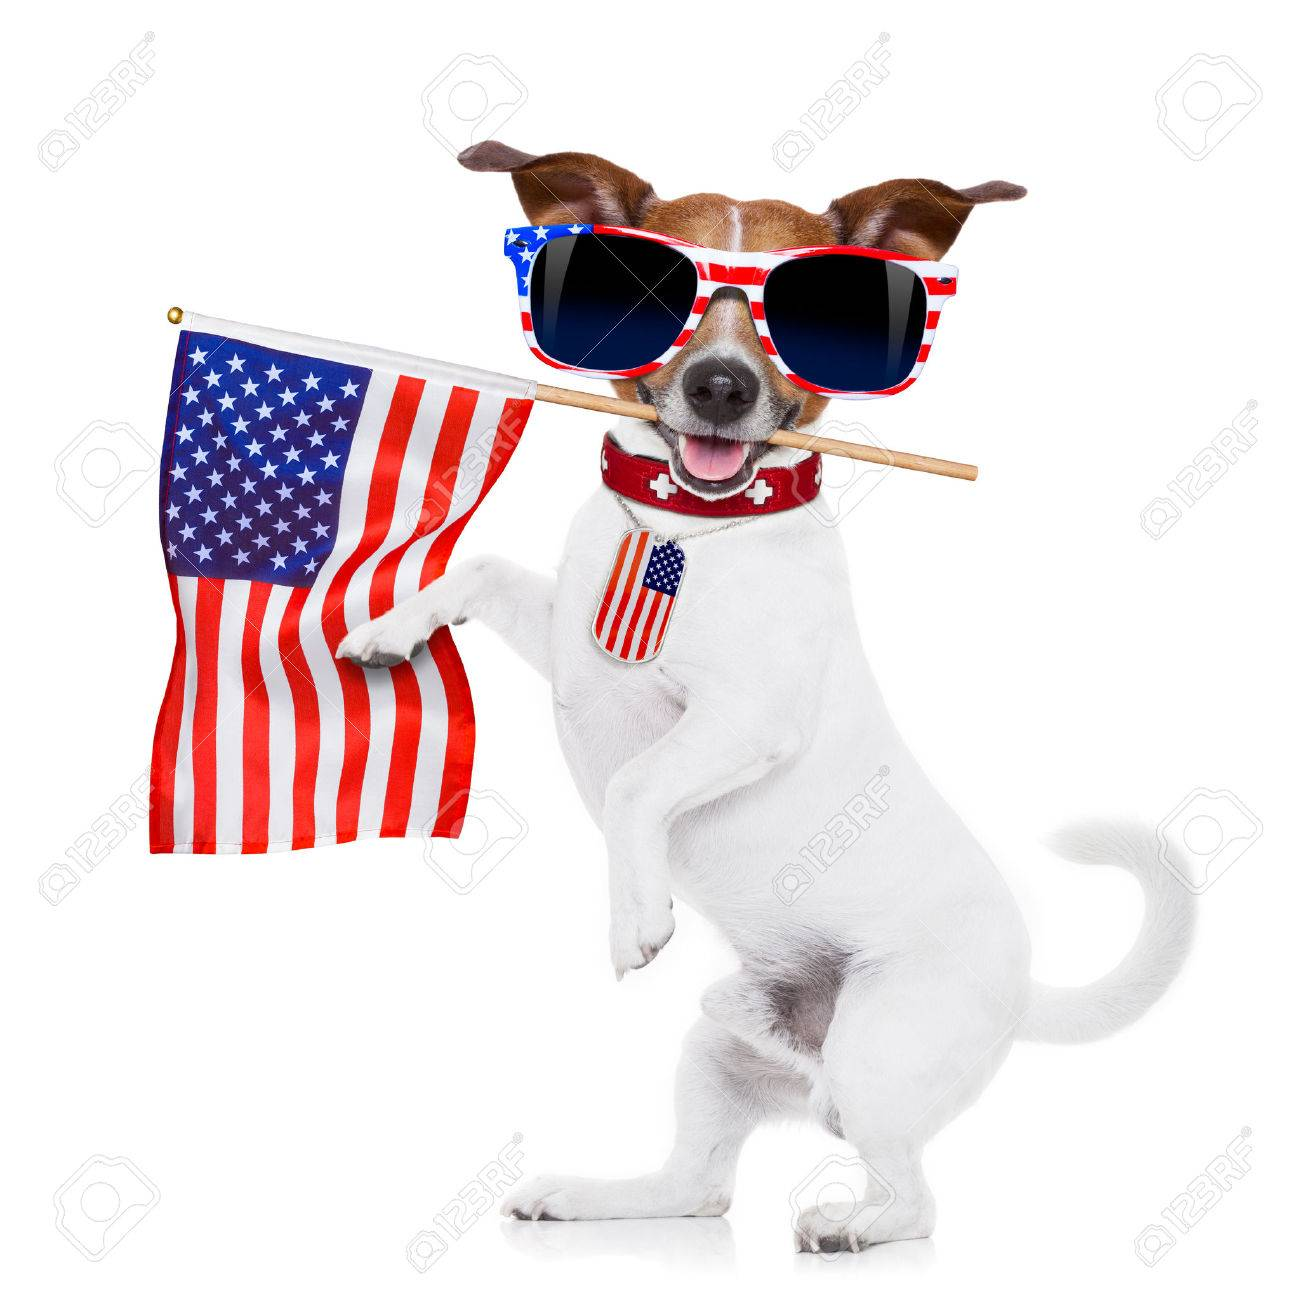 jack russell dog  holding a flag of usa on independence day on 4th  of july  with mouth  isolated on white background wearing american sunglasses Stock Photo - 41234138